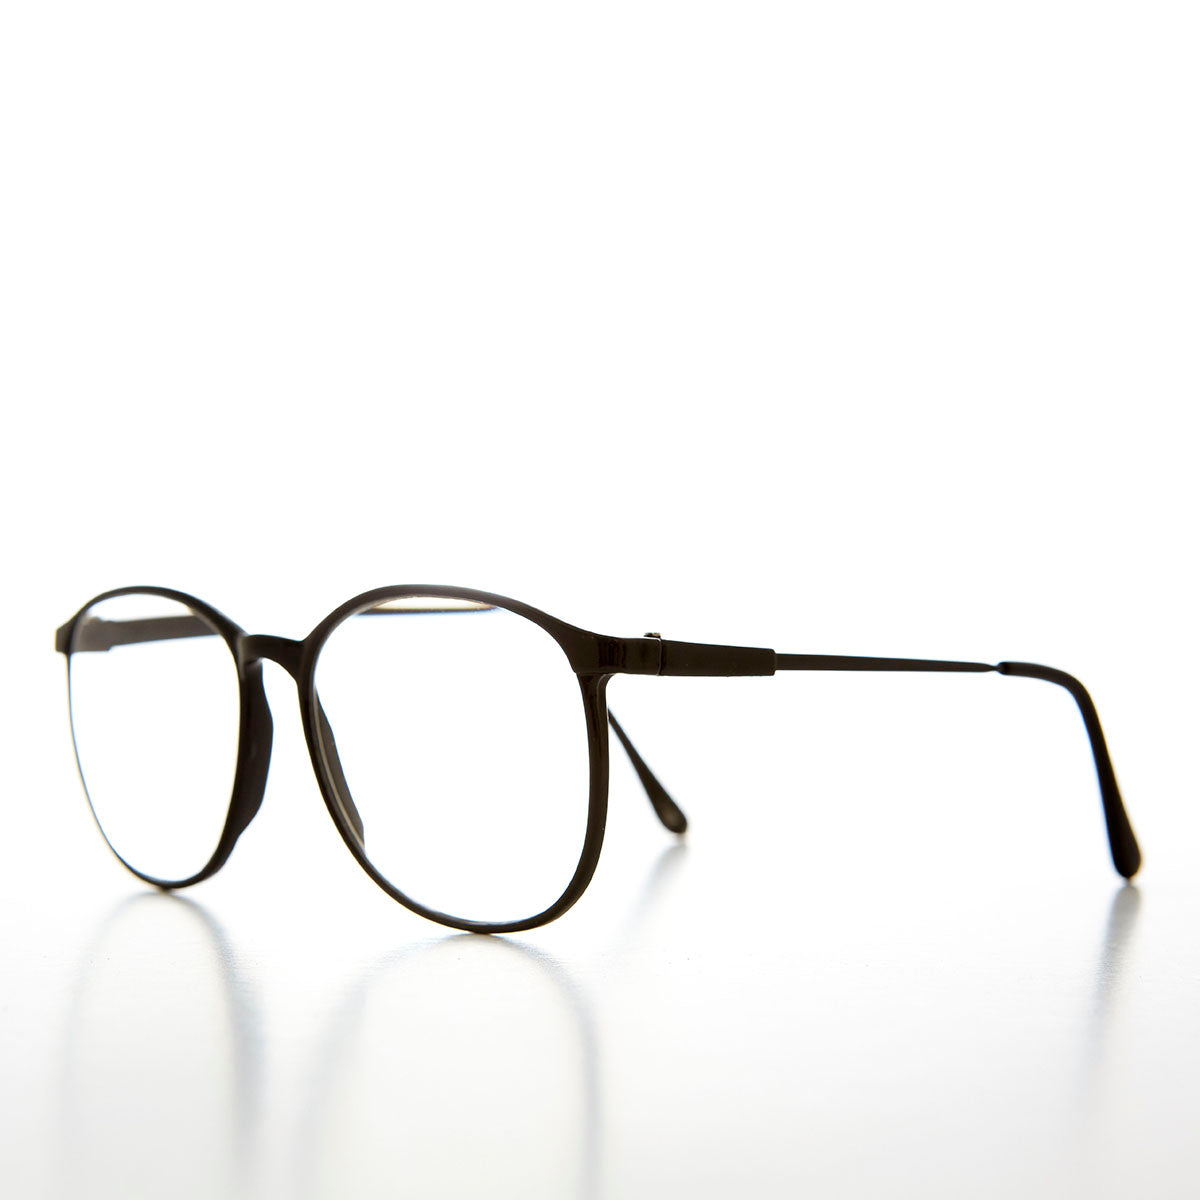 Oversized Preppy Round Vintage Optical Quality Reading Glasses